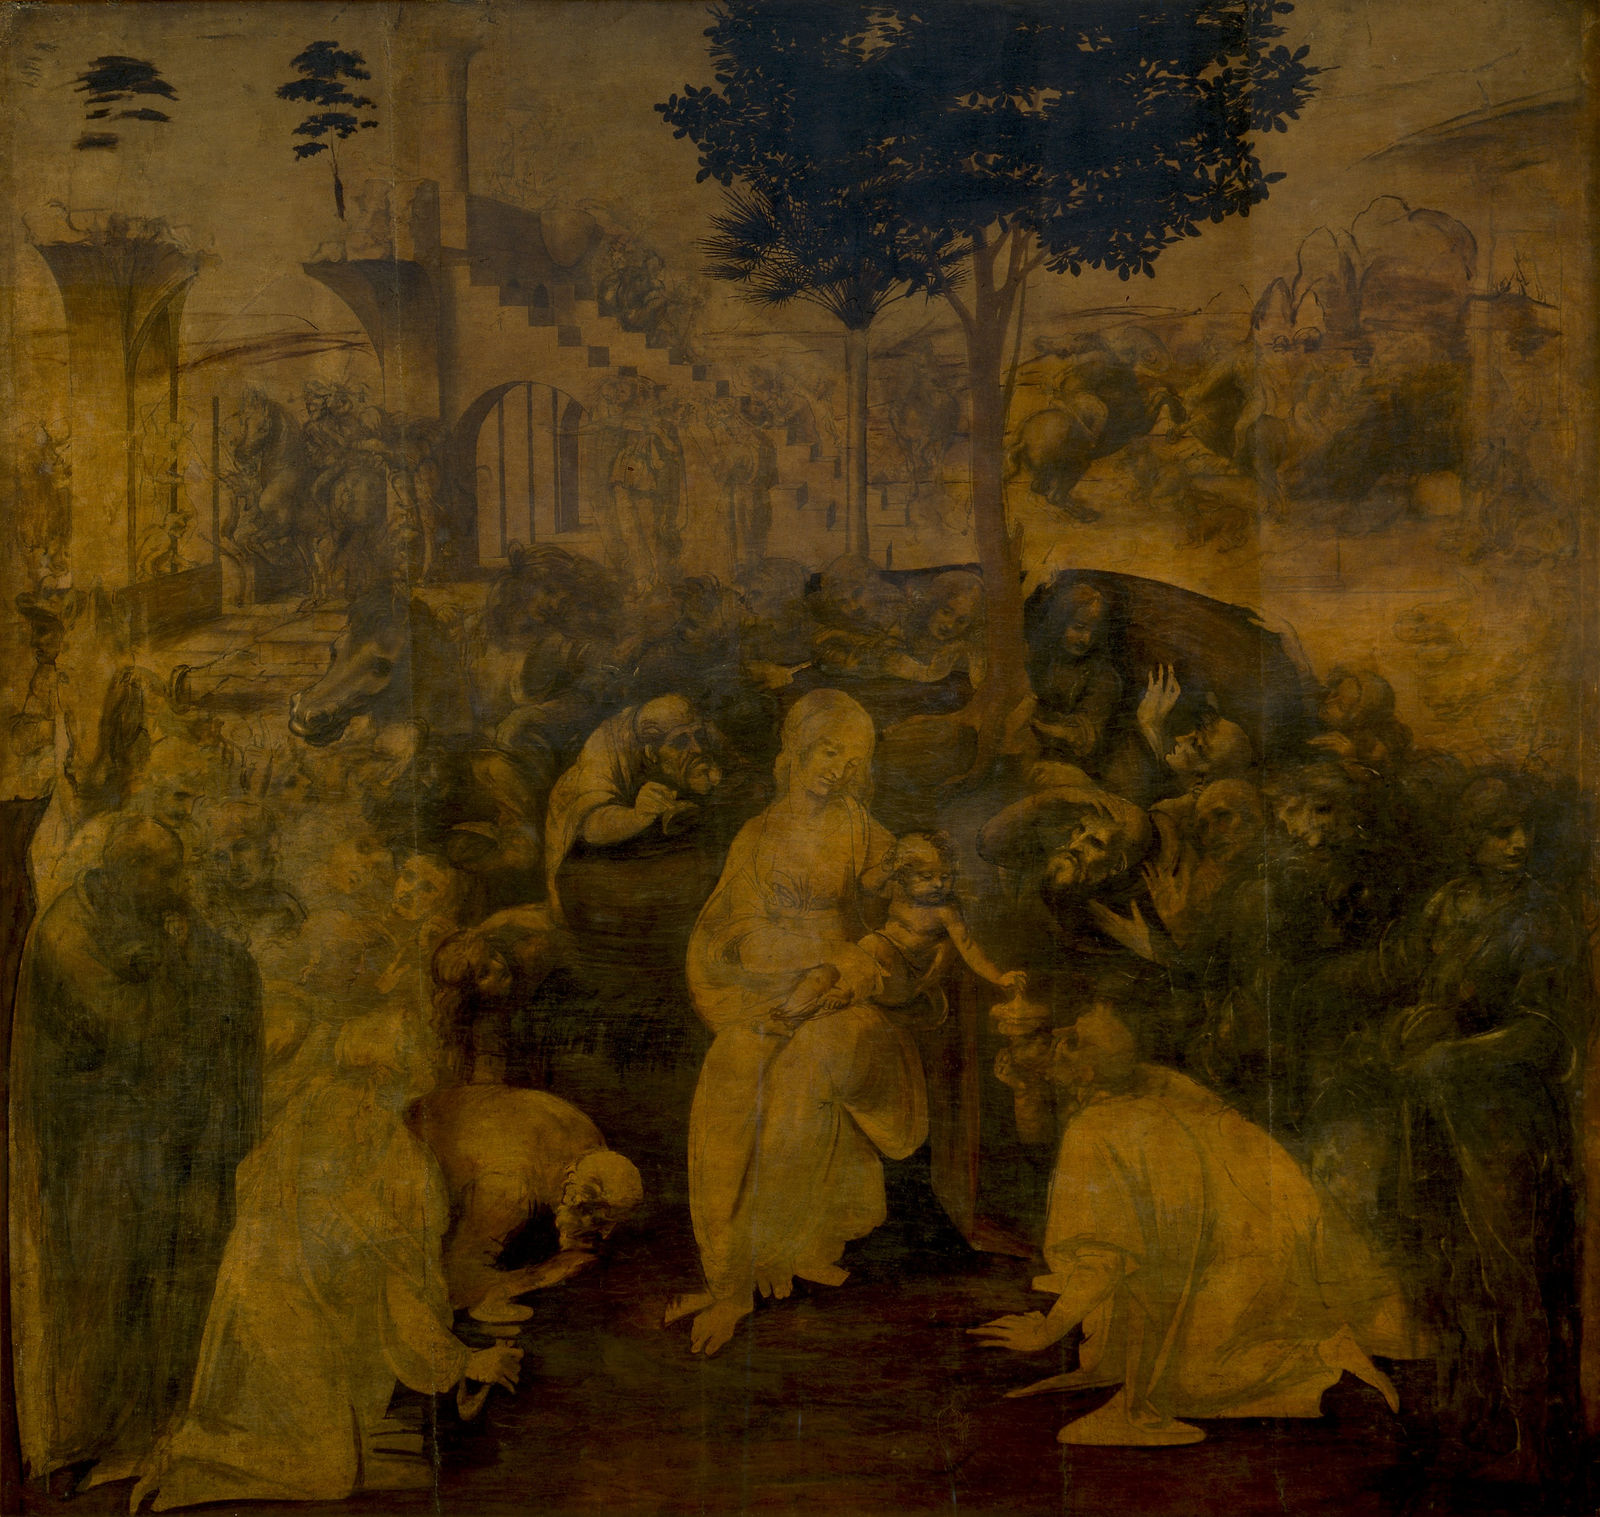 Leonardo da Vinci The Adoration of the Magi painting - art on screen telecast at Arena Theater